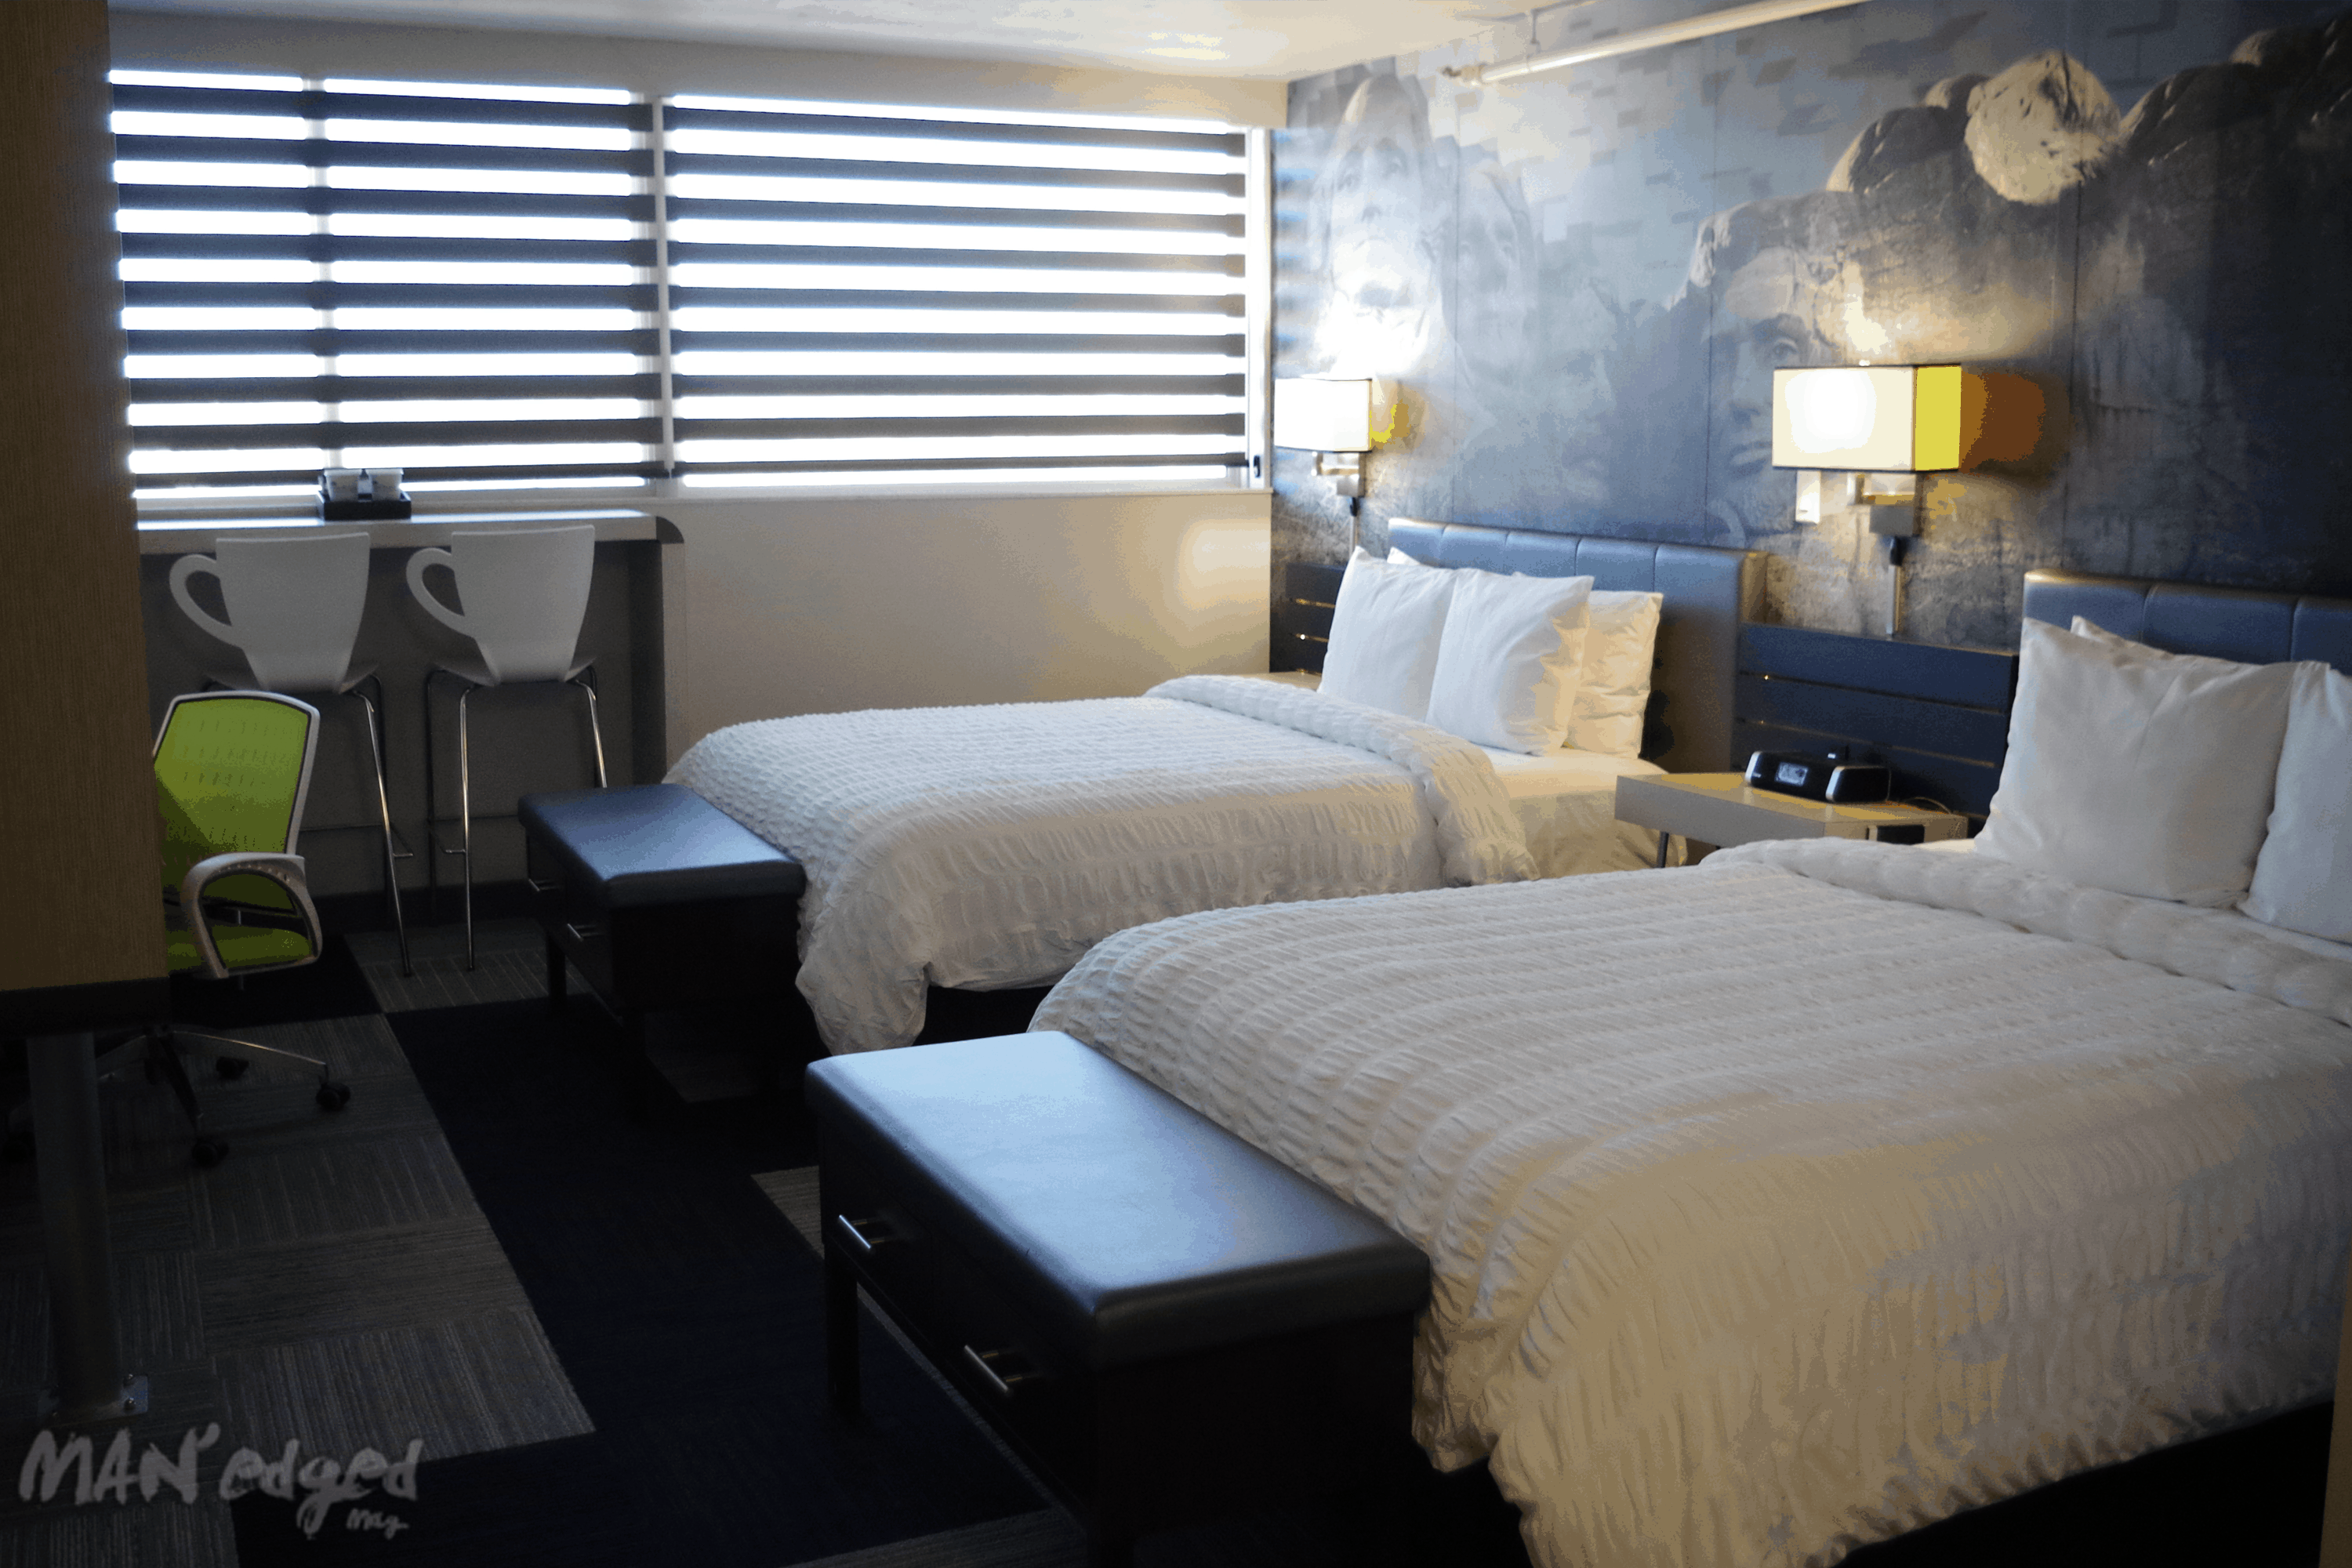 A look inside the modern rooms at the Rushmore Hotel and Suites.